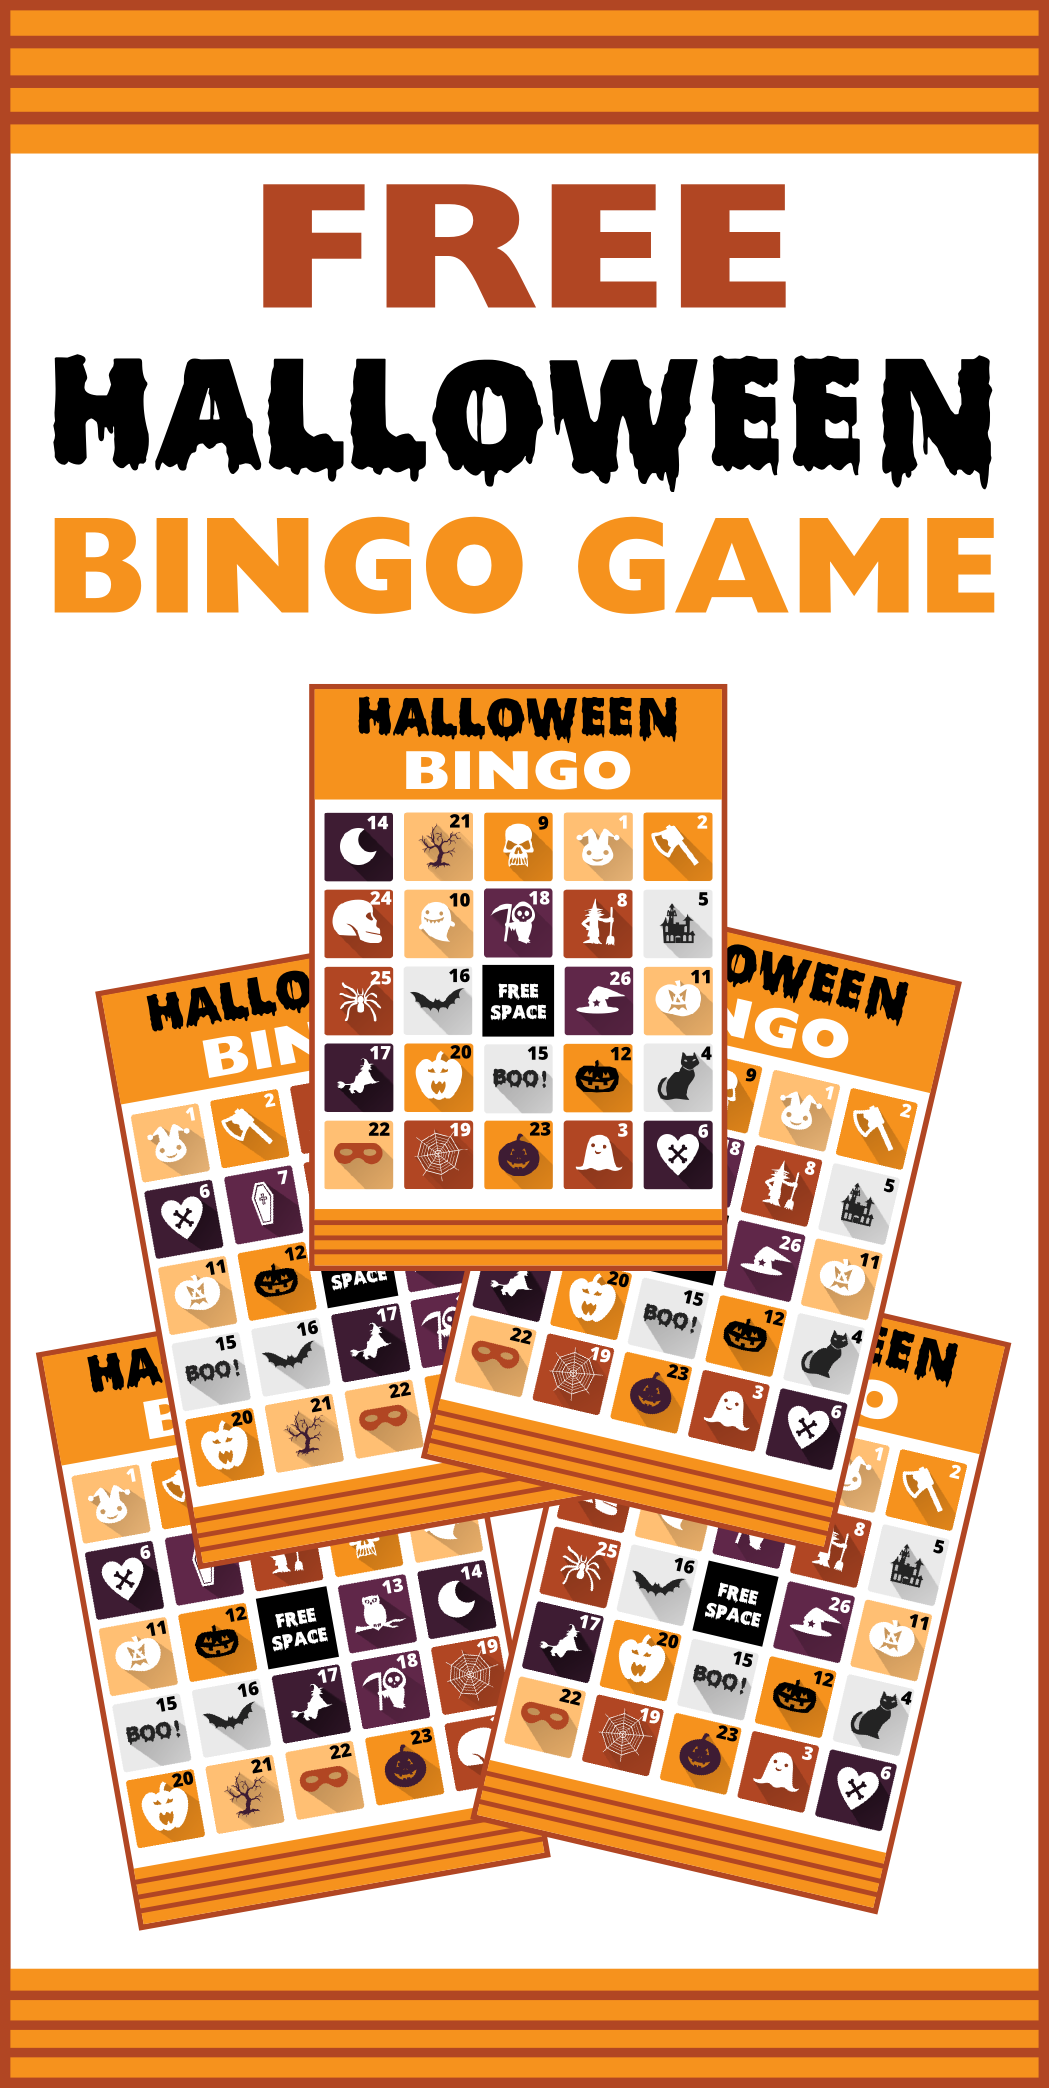 Selective image with halloween bingo free printable